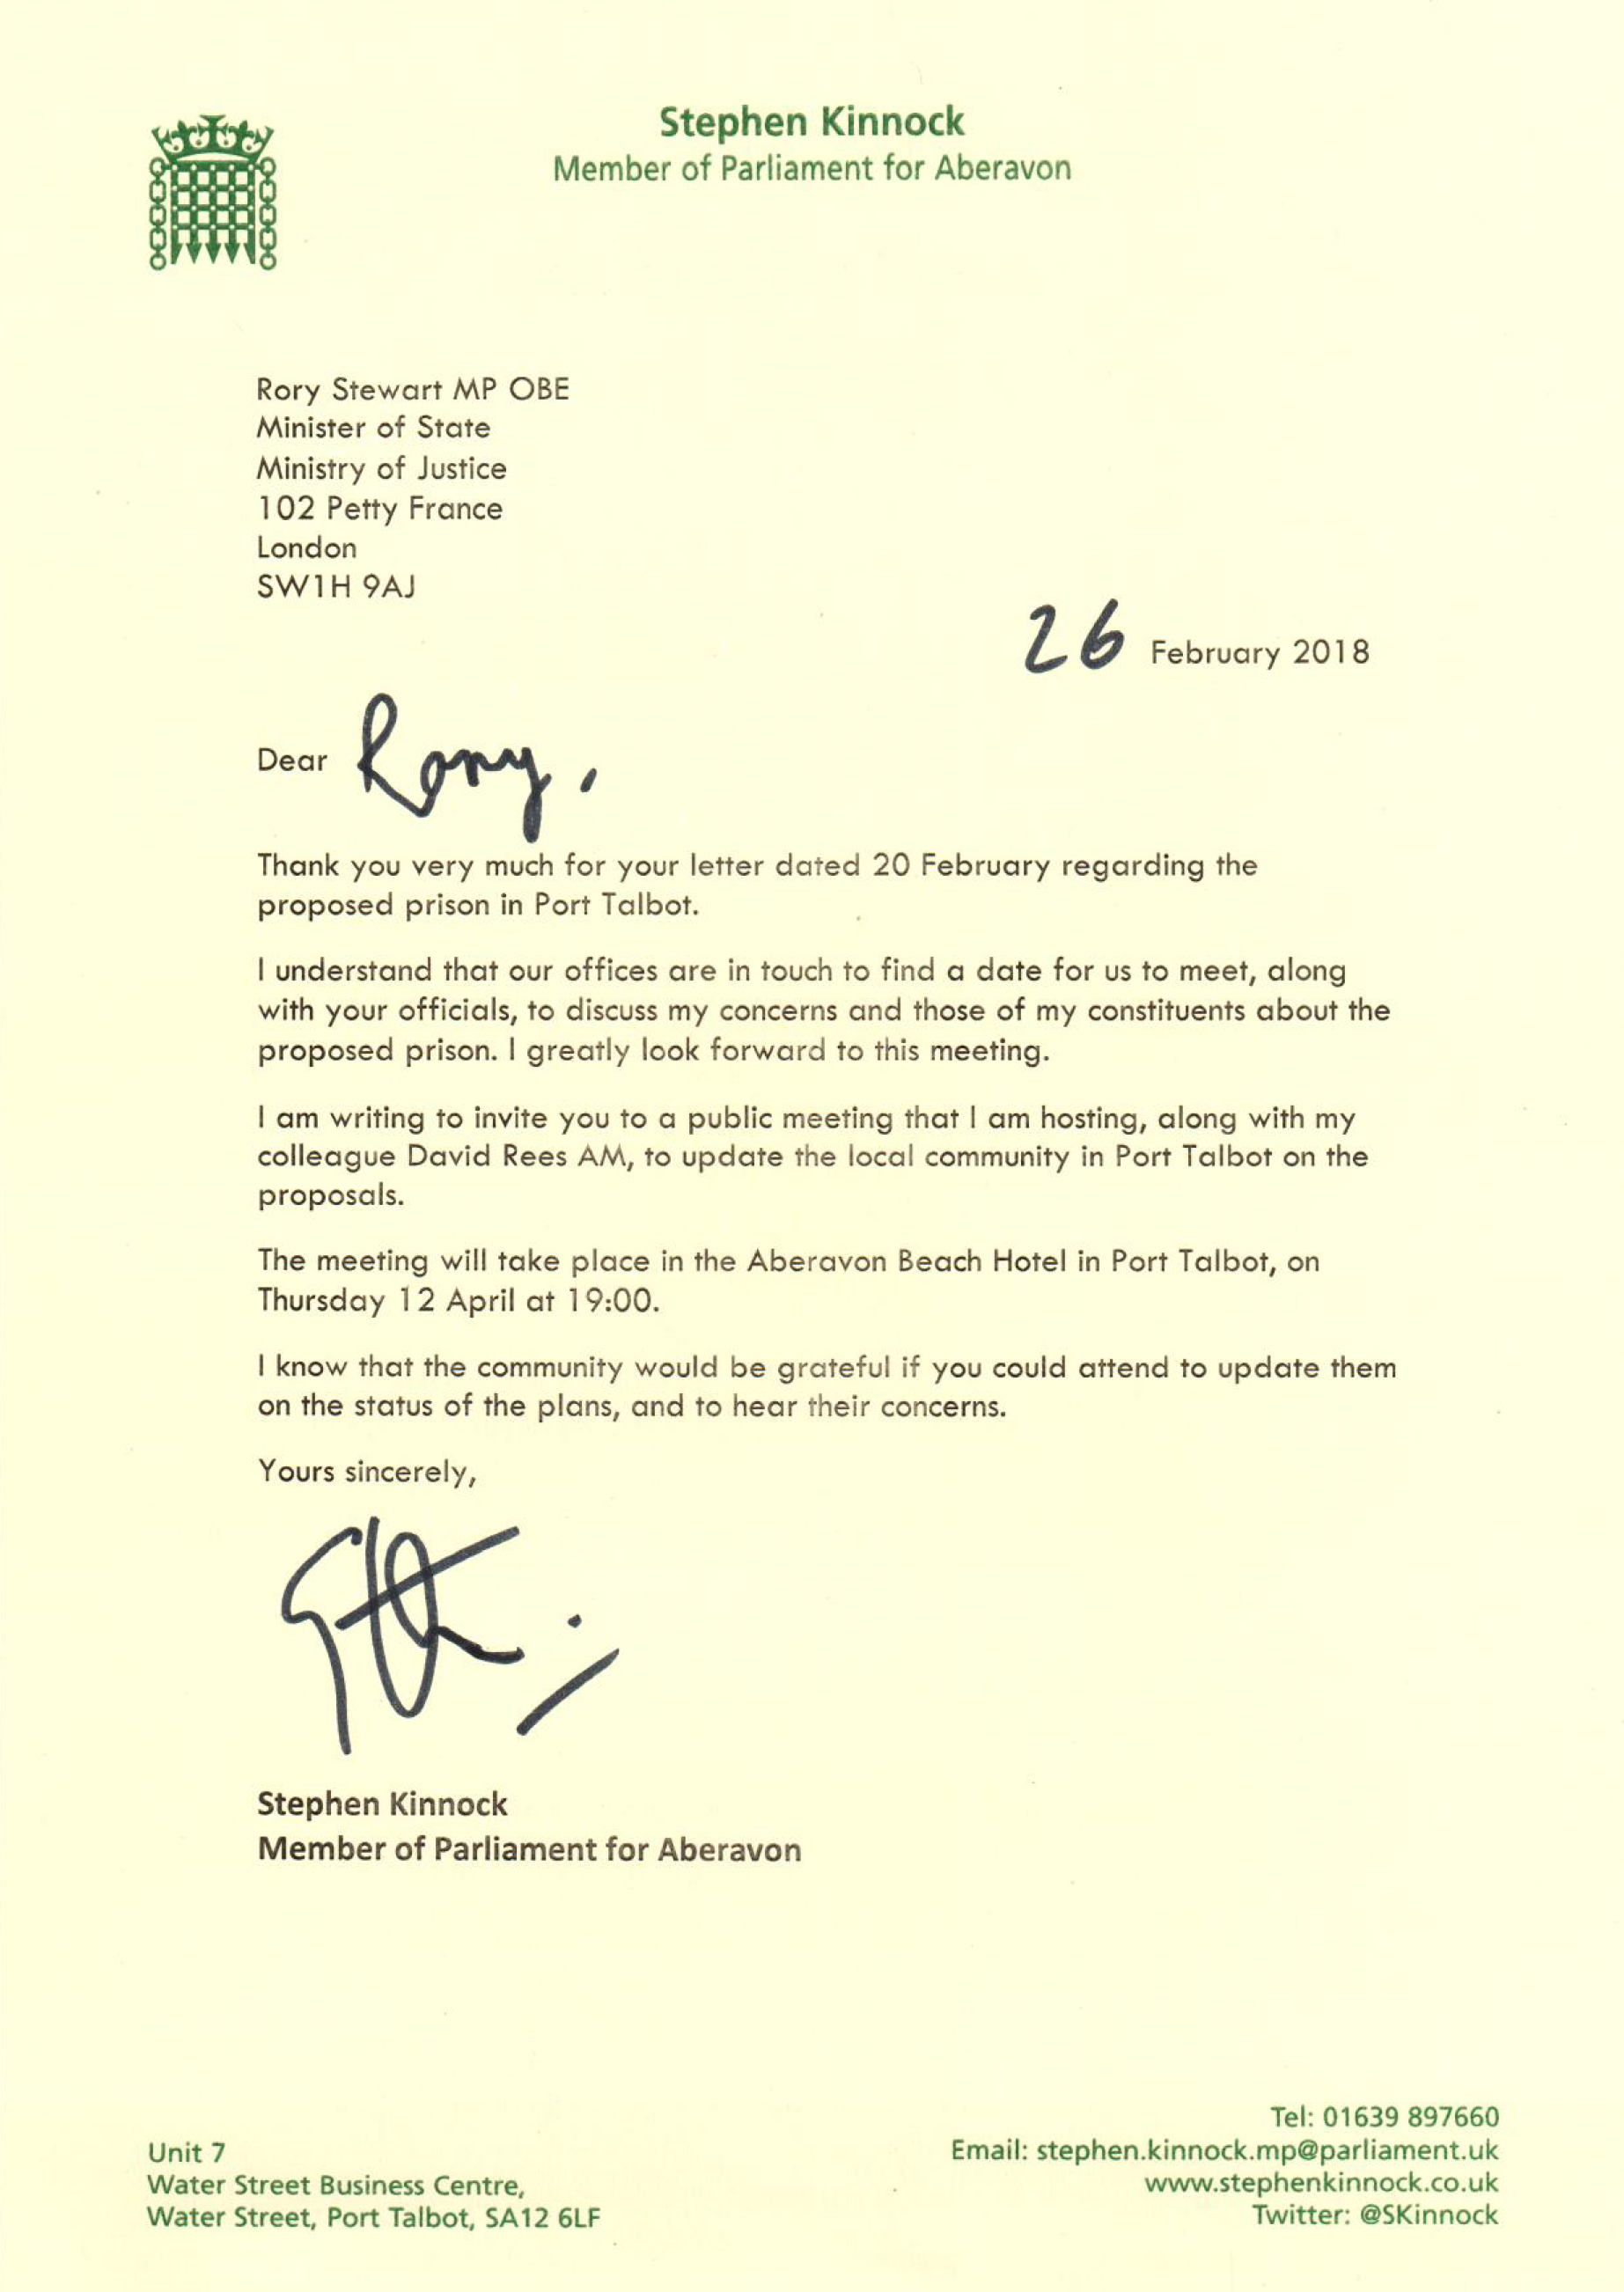 letter_to_Rory_Stewart_26020218.png